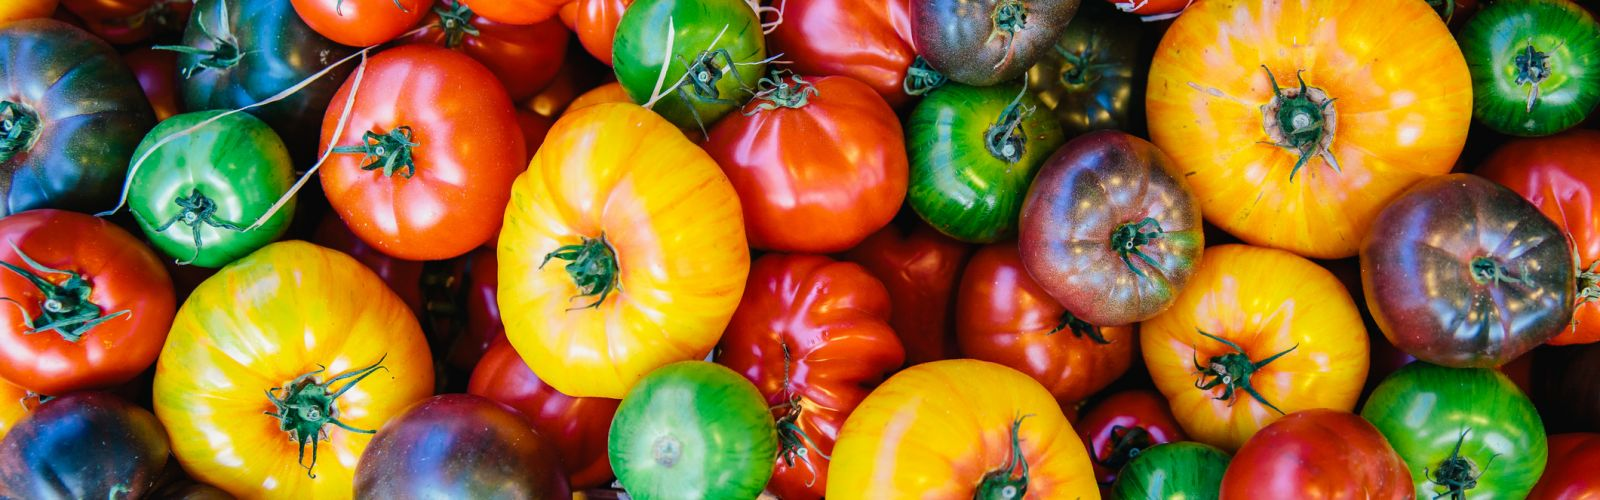 an overhead view of a bunch of different colored tomatos